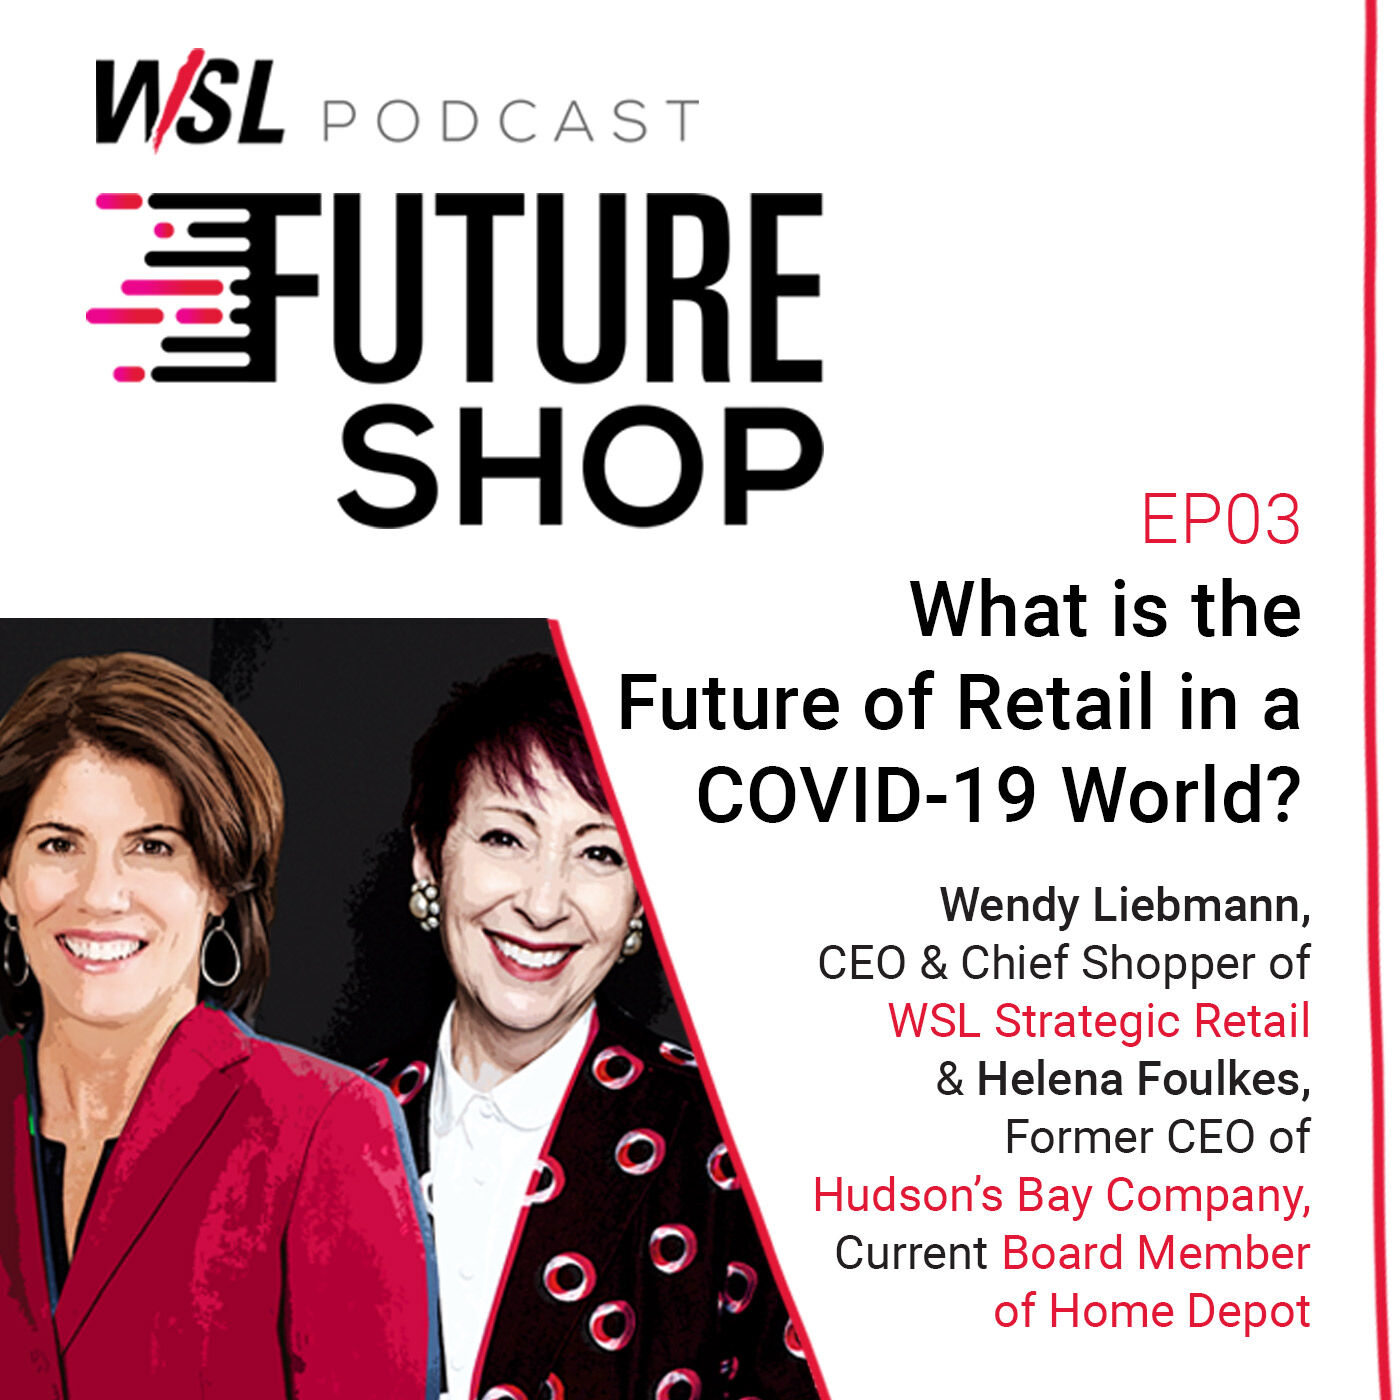 EP 03: What is the Future of Retail in a COVID-19 World?